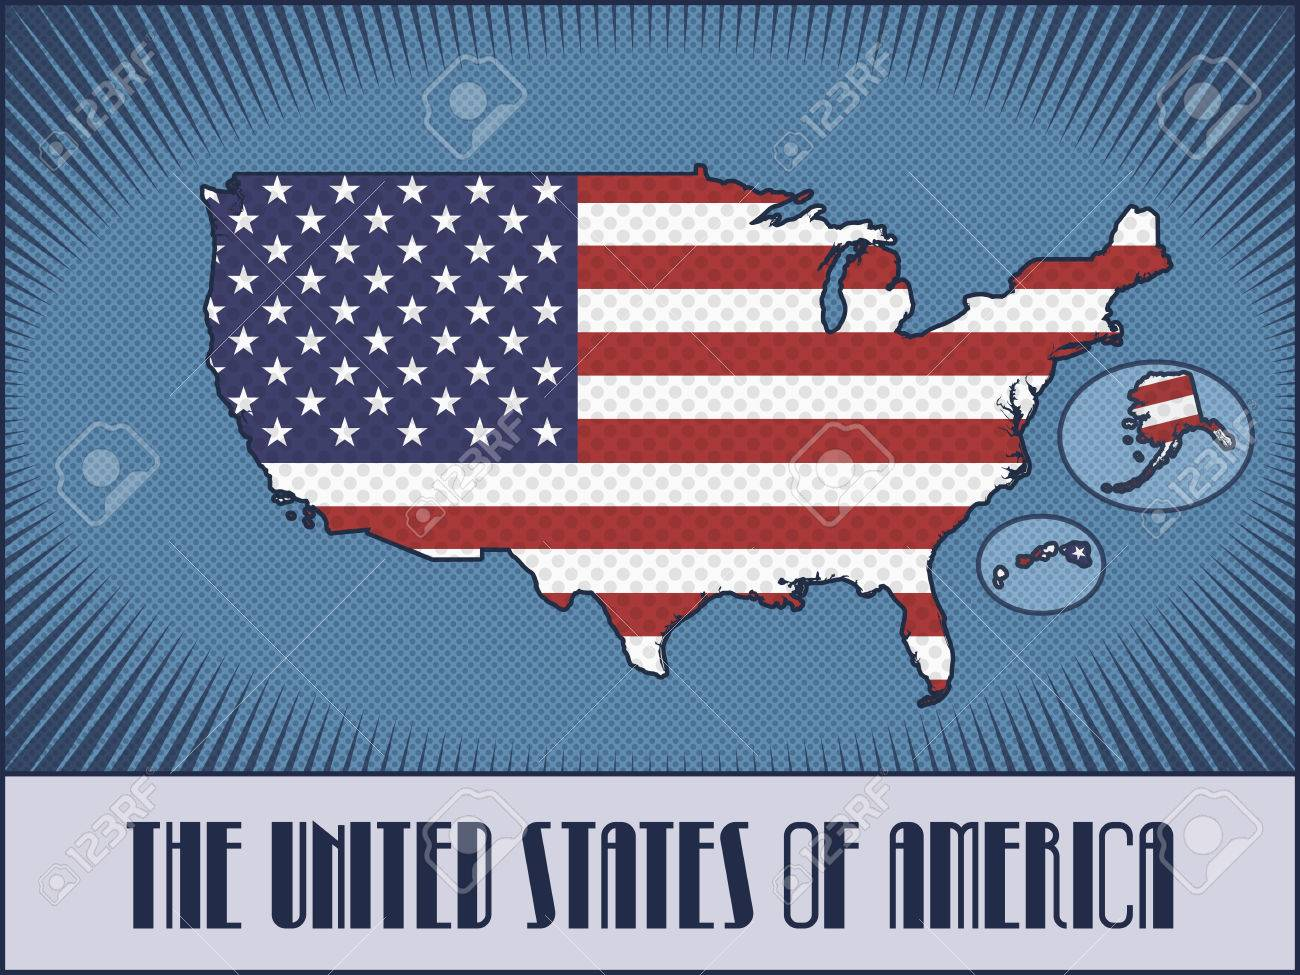 Vector Map Of The United States Of America With Alaska And Hawaii - Us alaska hawaii no states vector map